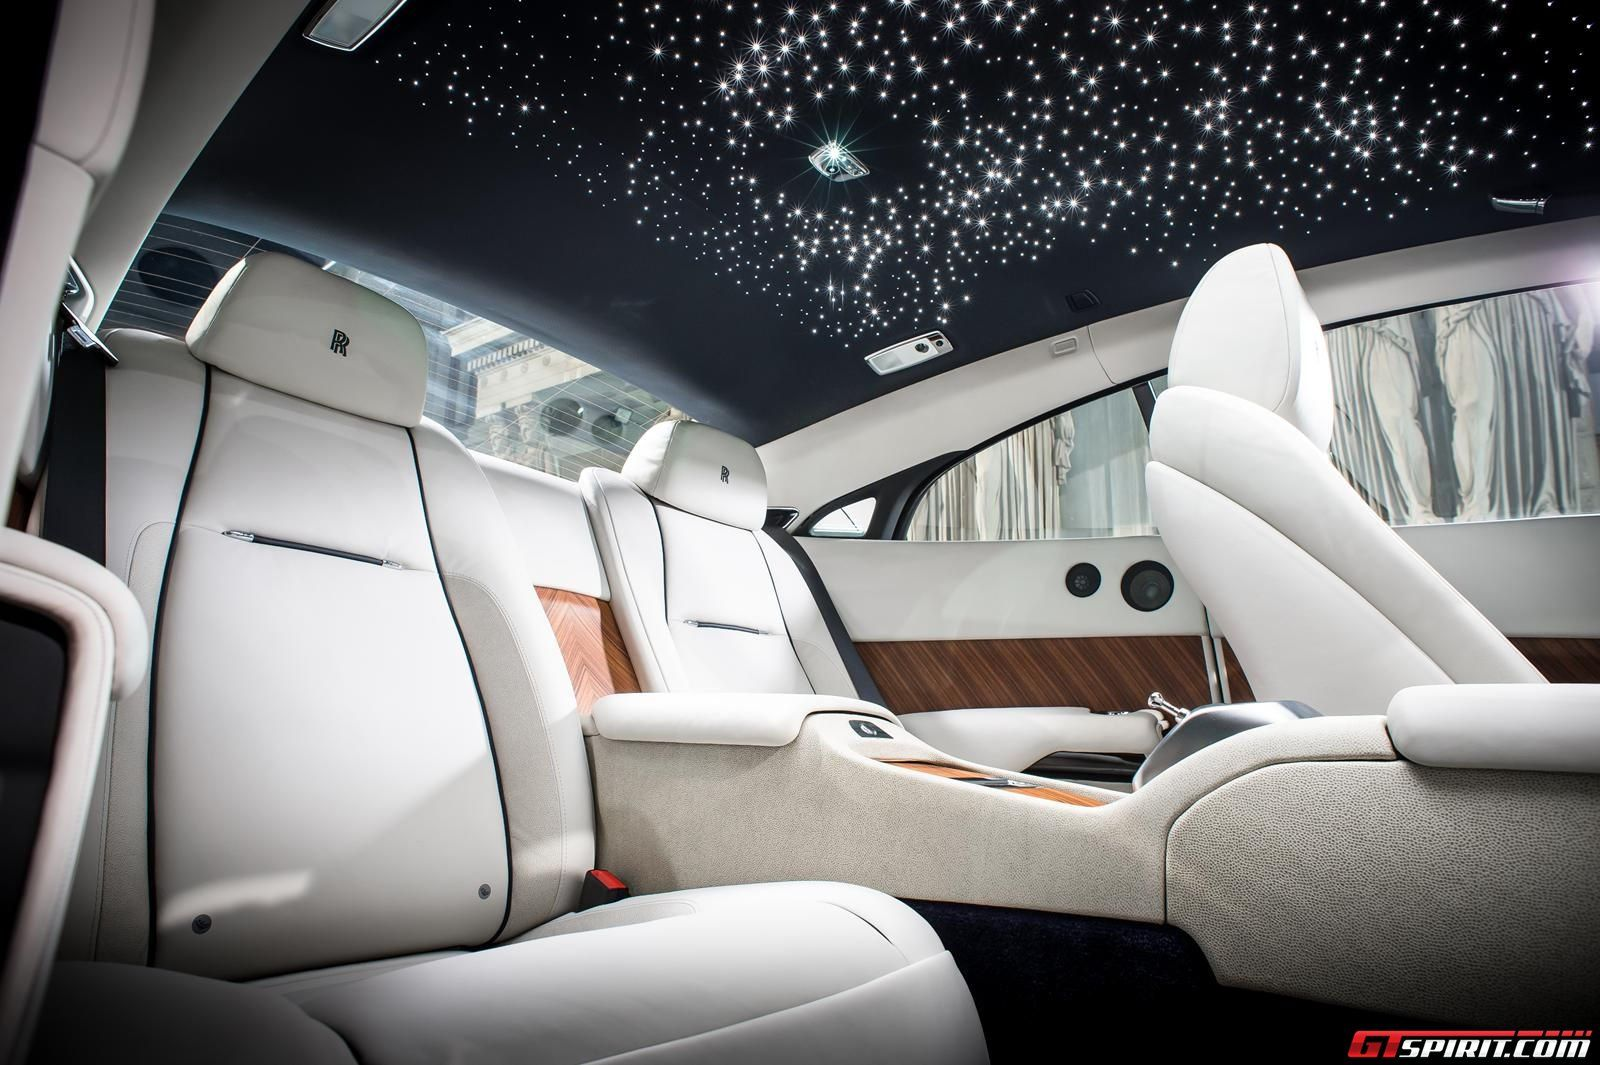 rolls royce wraith interior roof images galleries with a bite. Black Bedroom Furniture Sets. Home Design Ideas